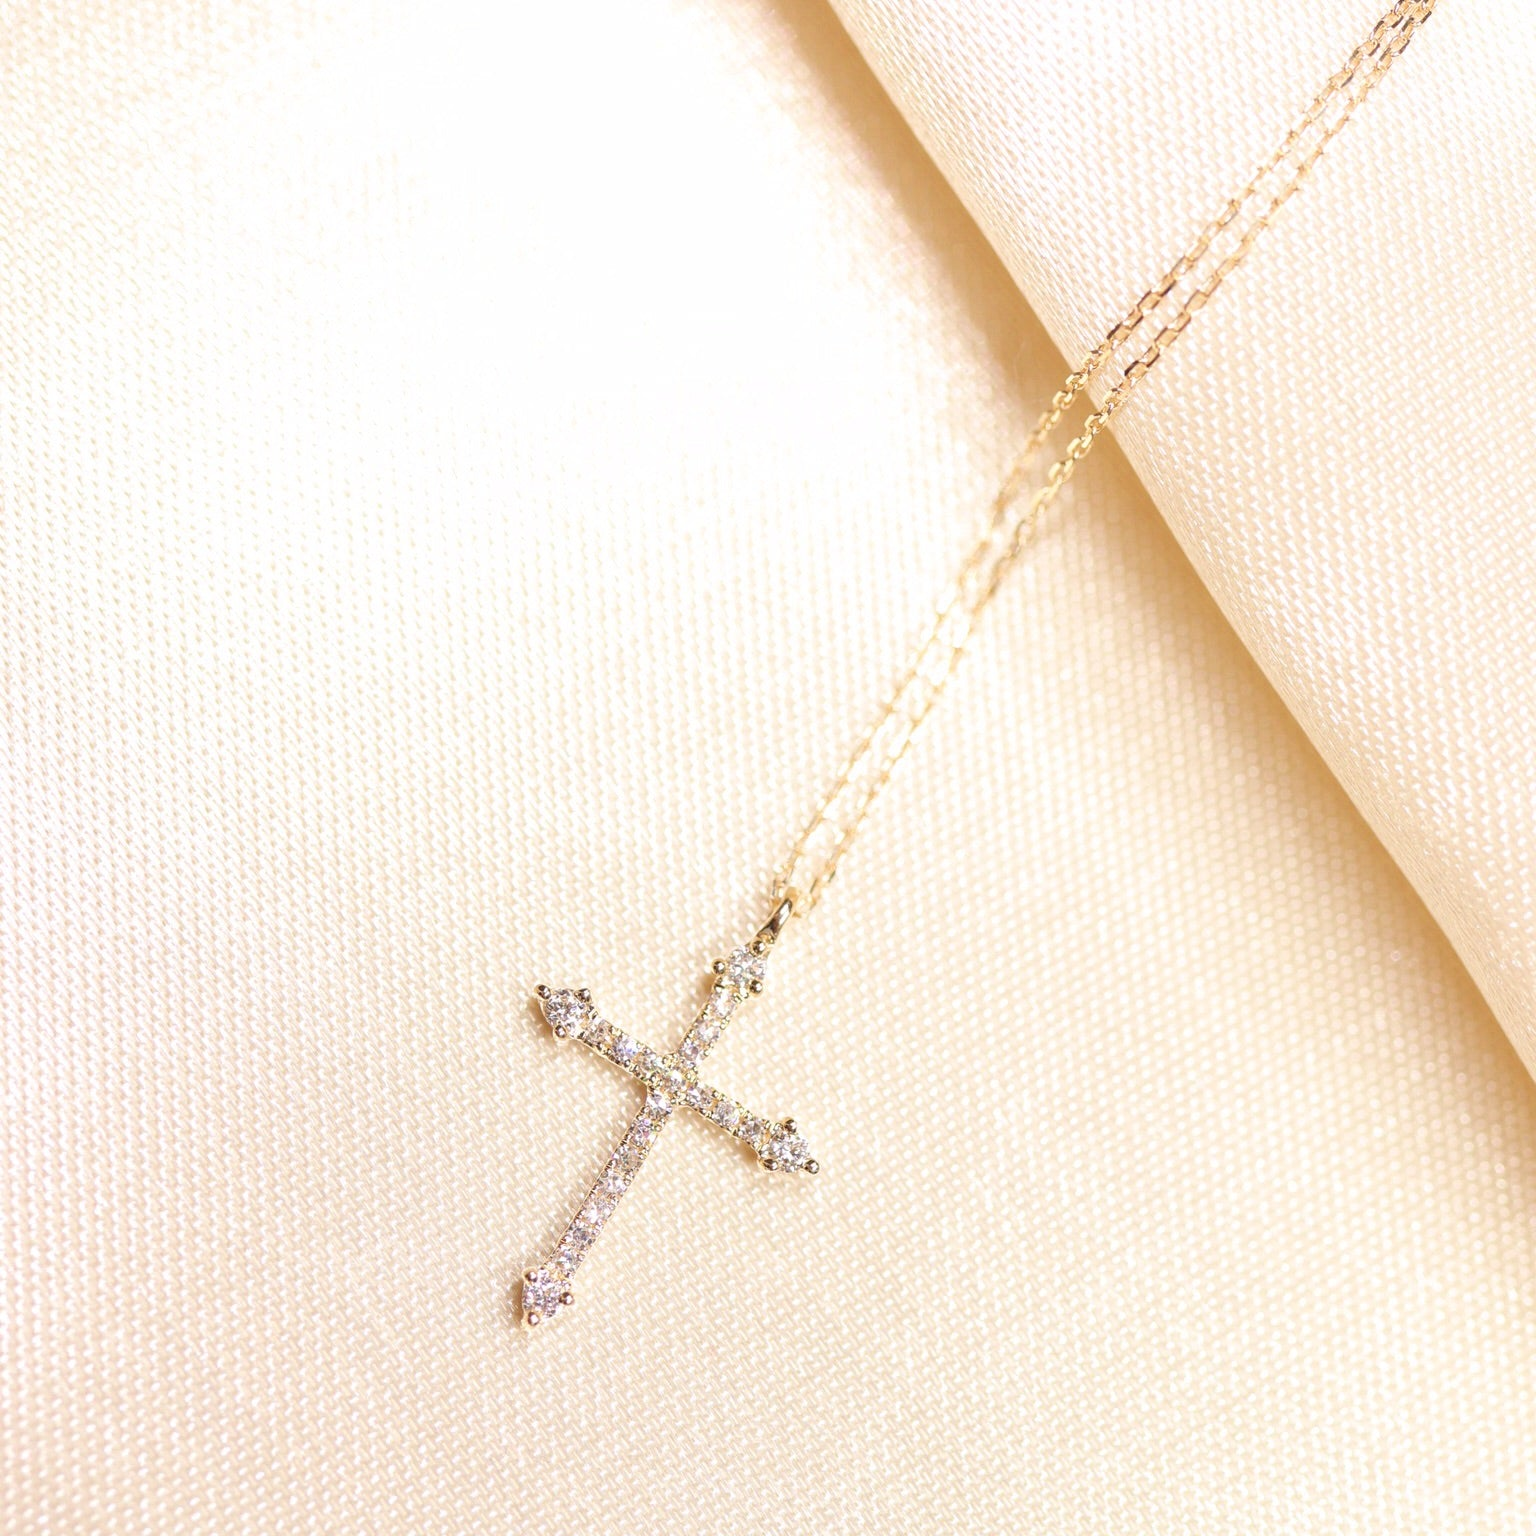 14K Gold Diamond Cross Necklace - Ice Motif